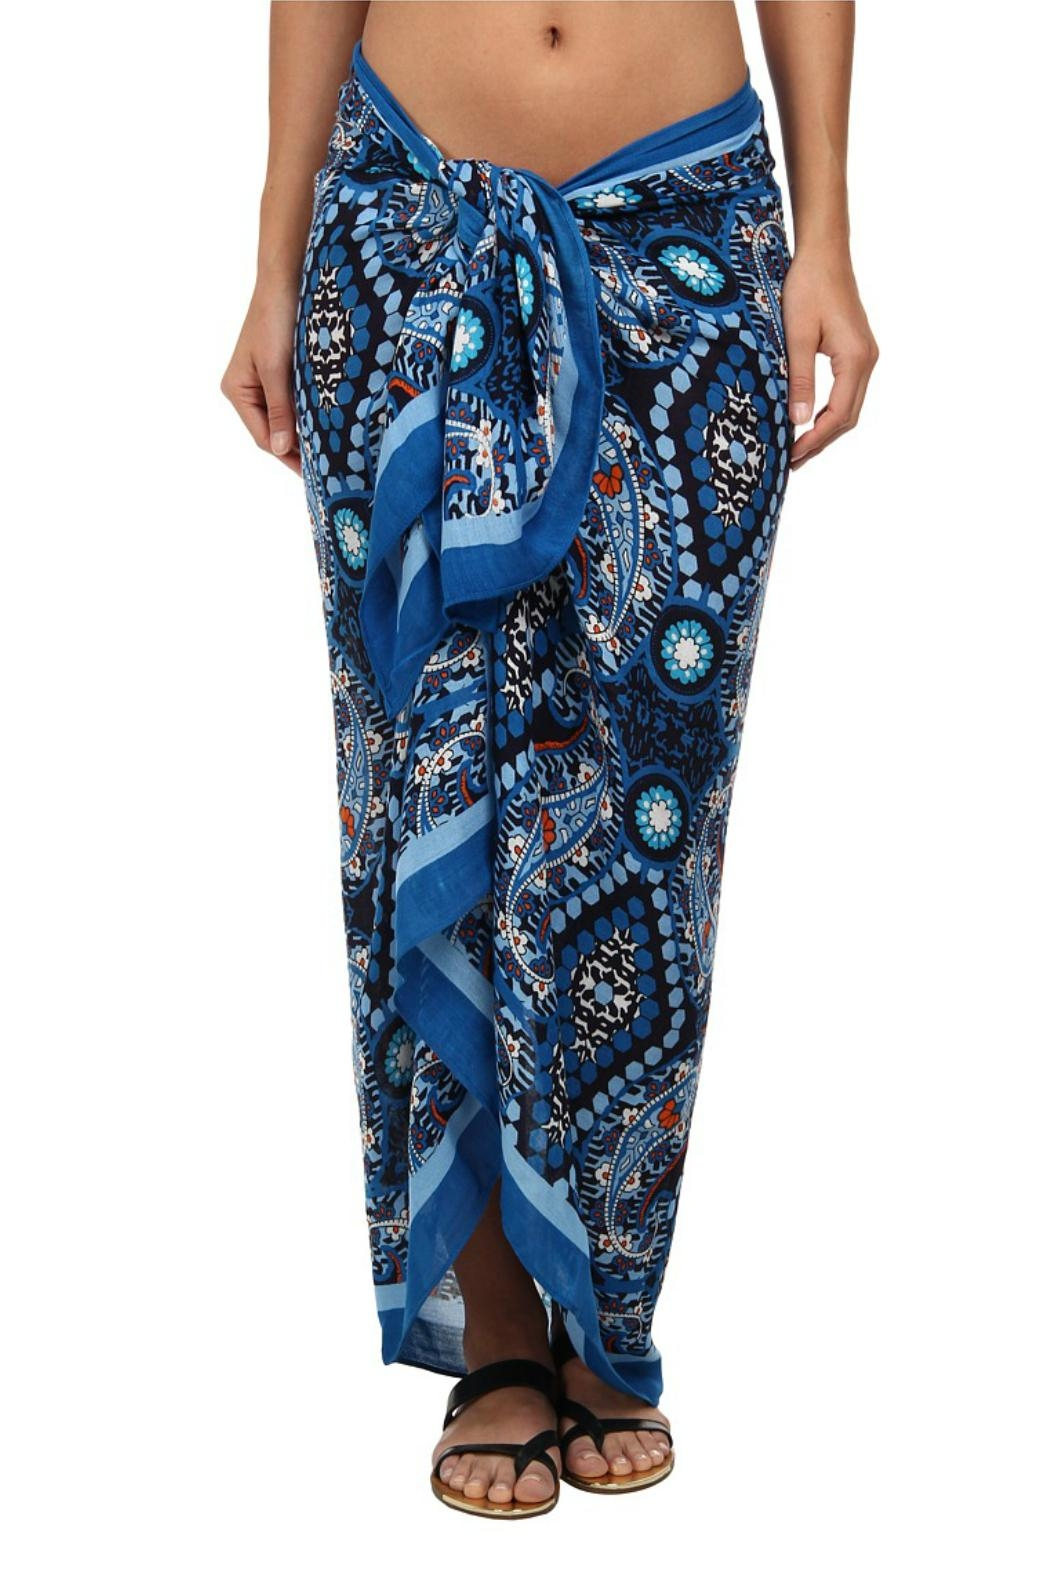 Vera Bradley Marrakesh Oversized Scarf/sarong - Front Cropped Image